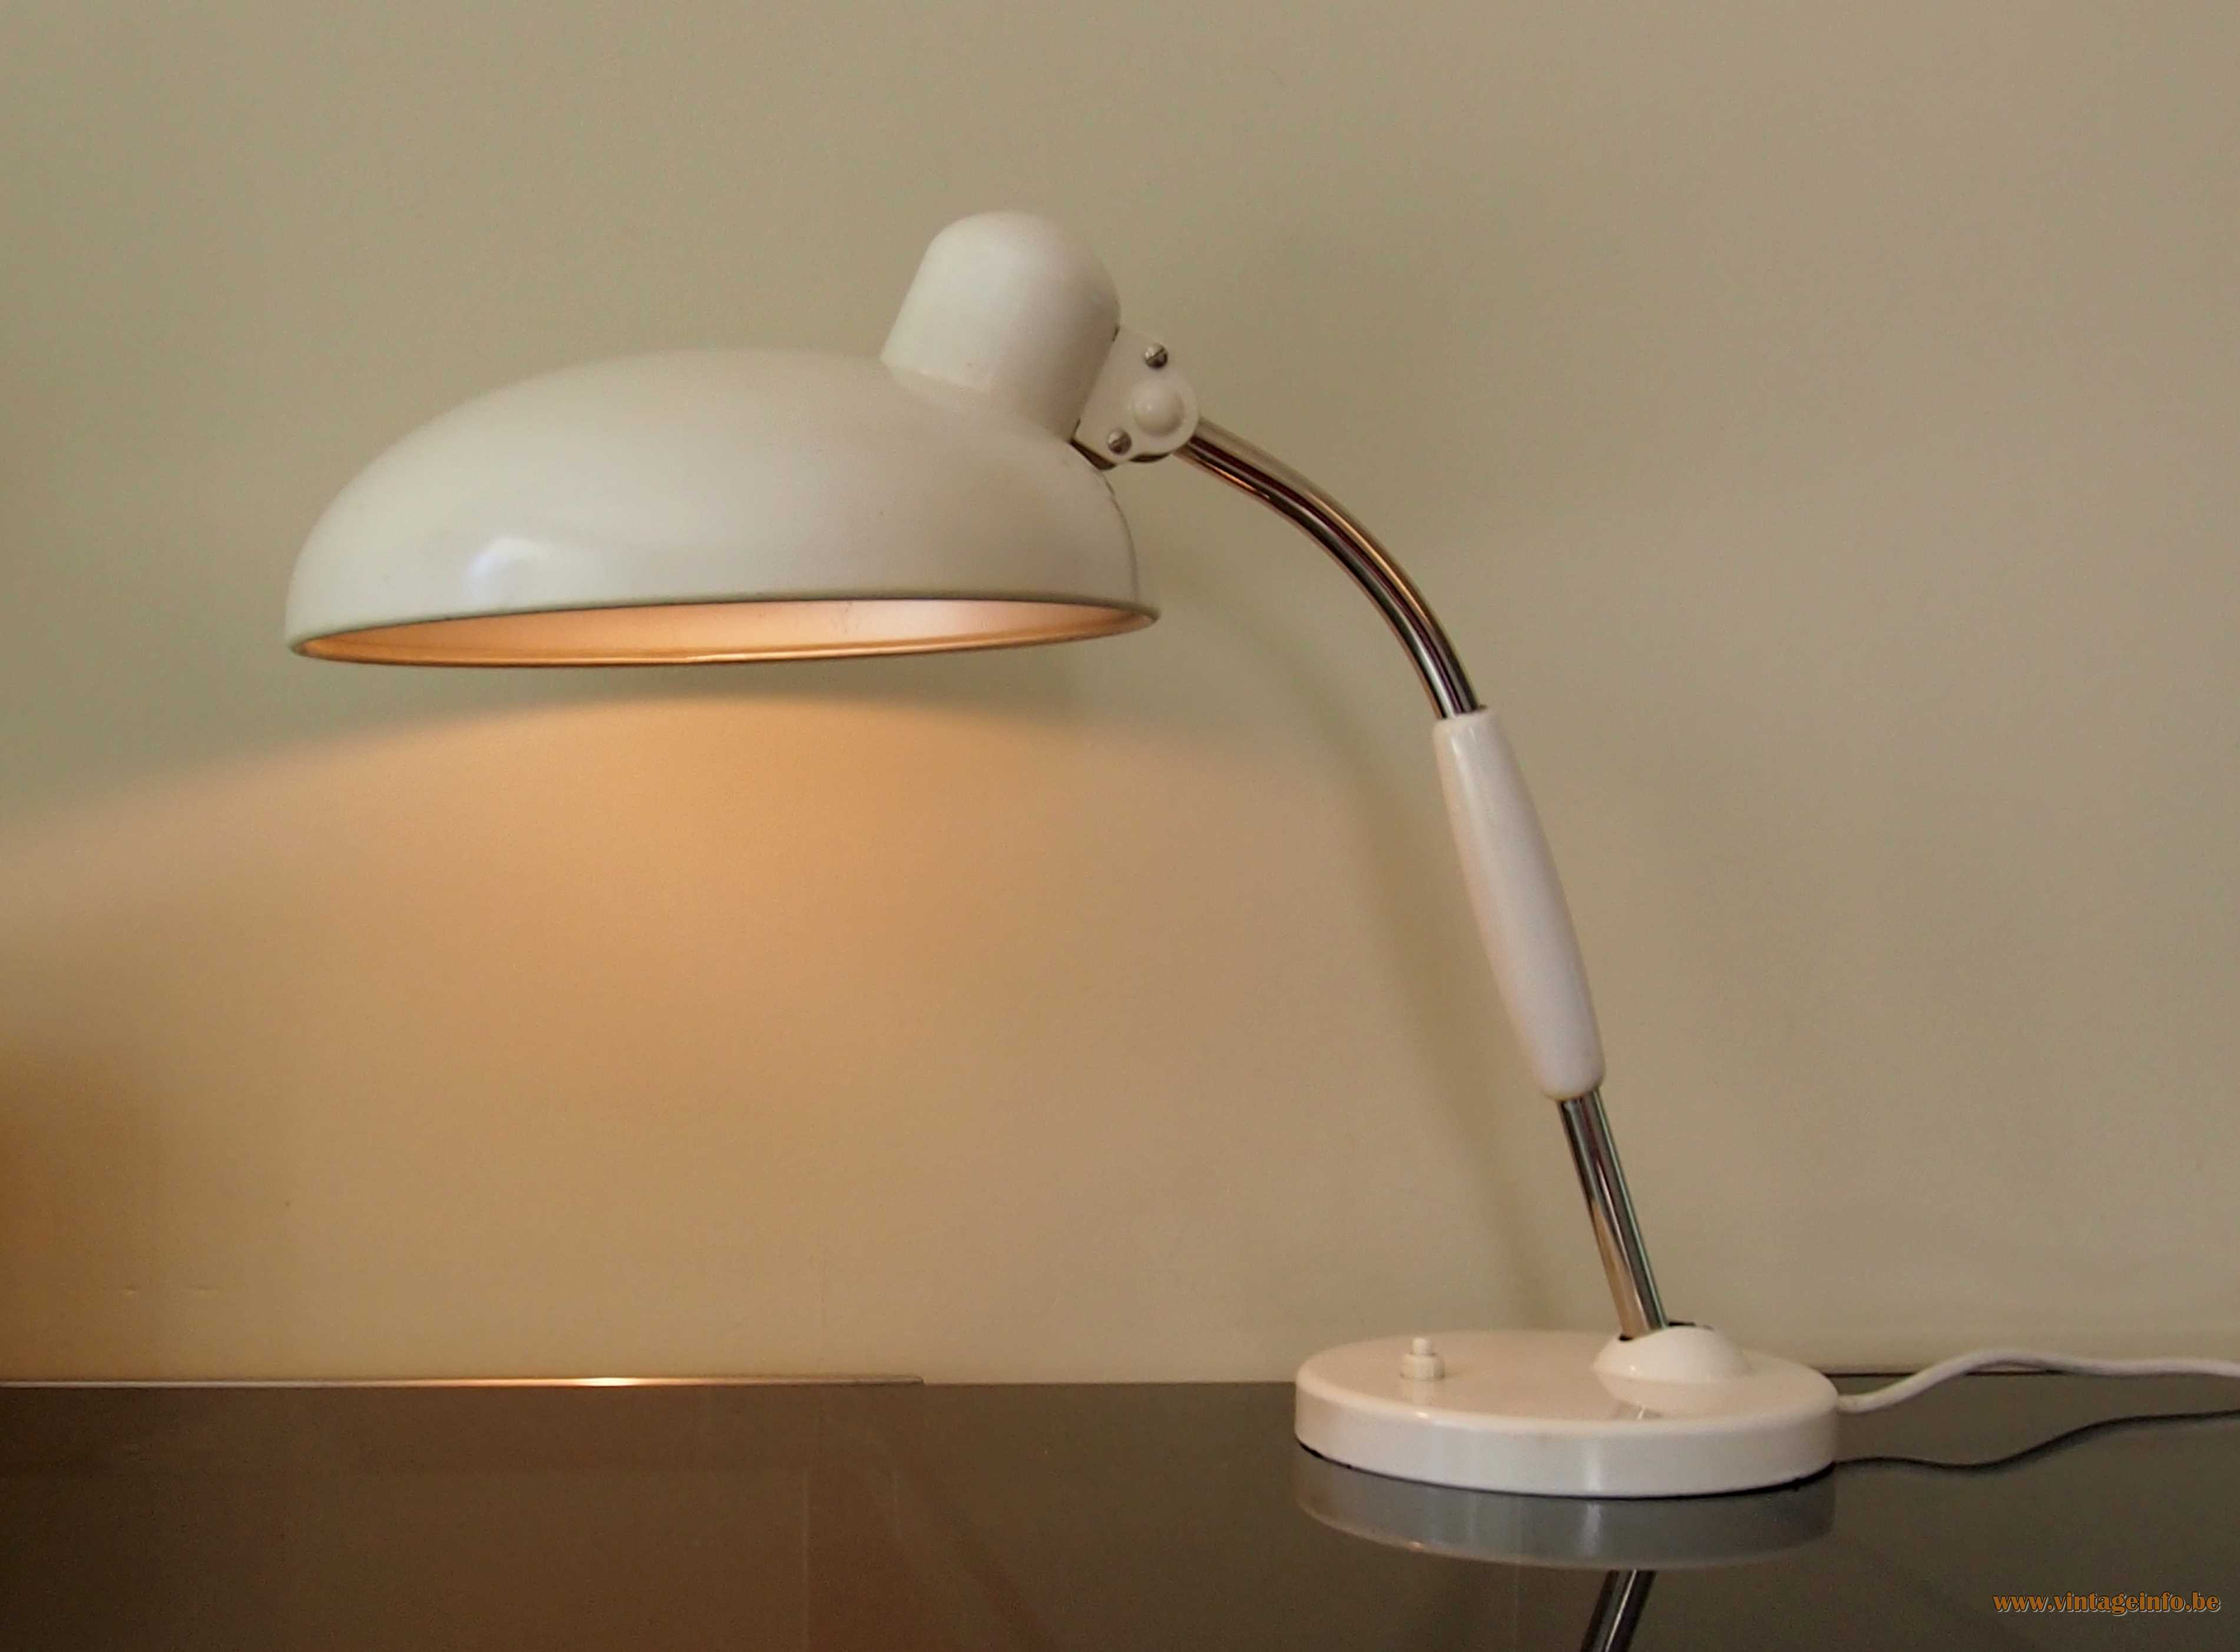 Christian Dell Koranda Desk Lamp 1933 design white metal chrome 1960s, 1970s Bauhaus Bruder Koranda & Co Austria